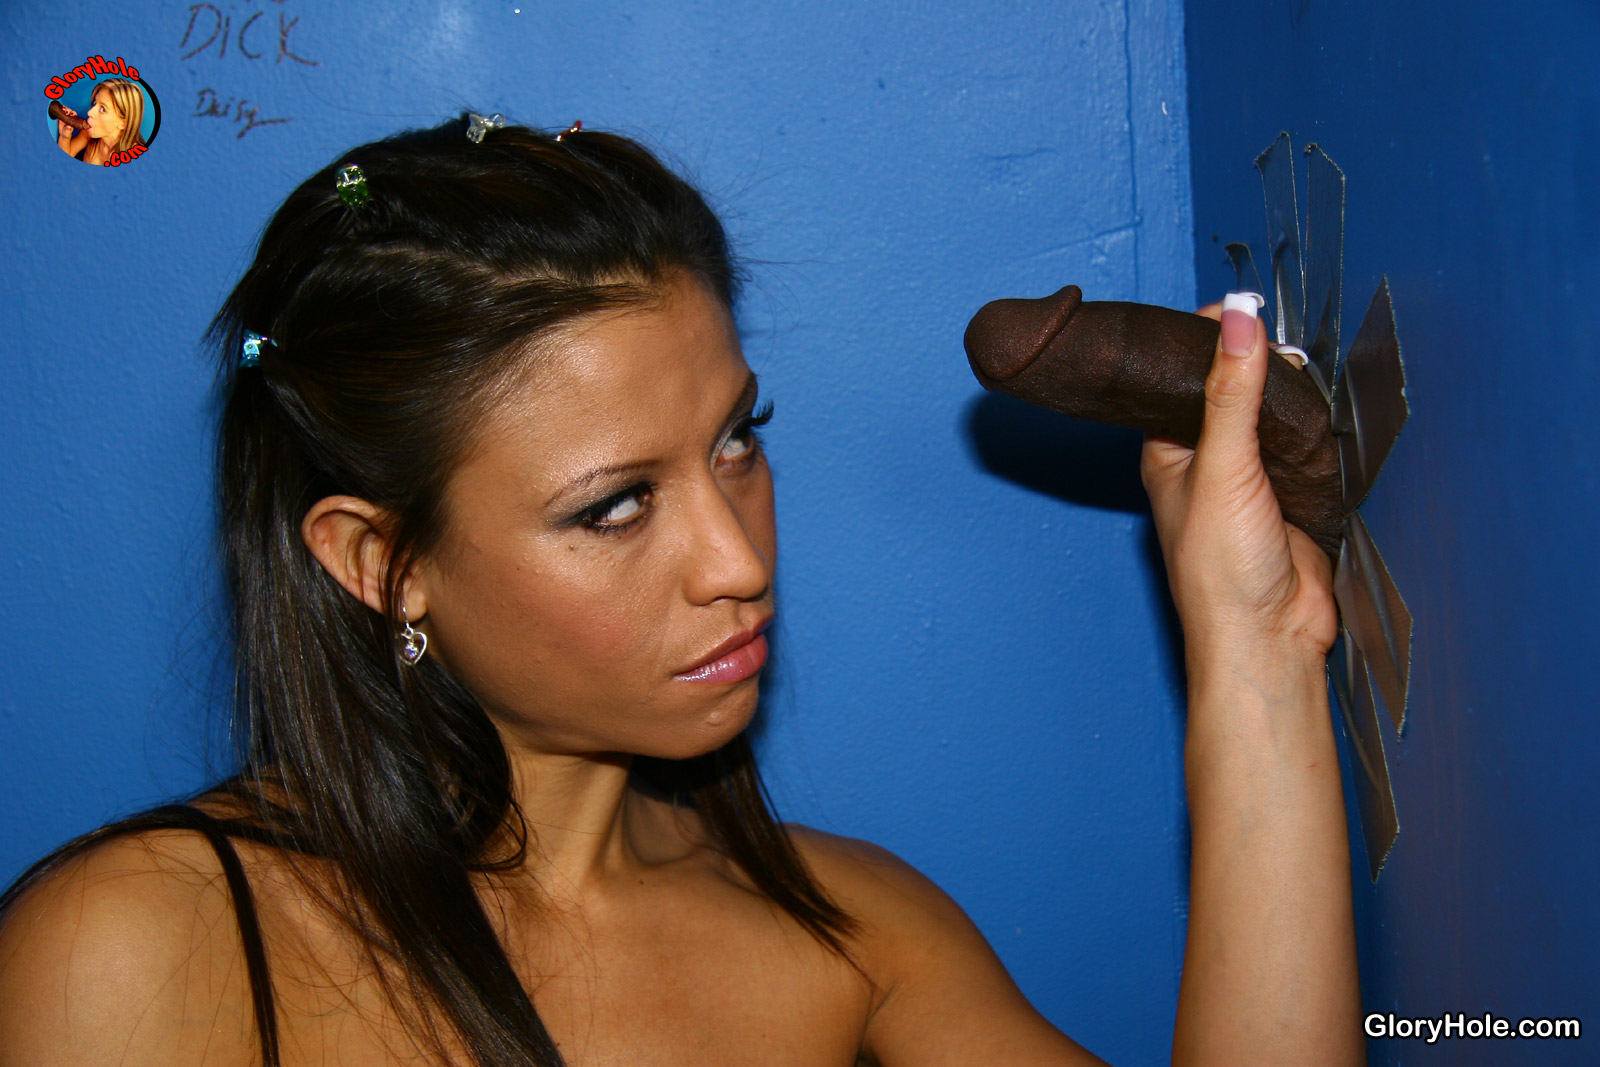 glory hole reviews